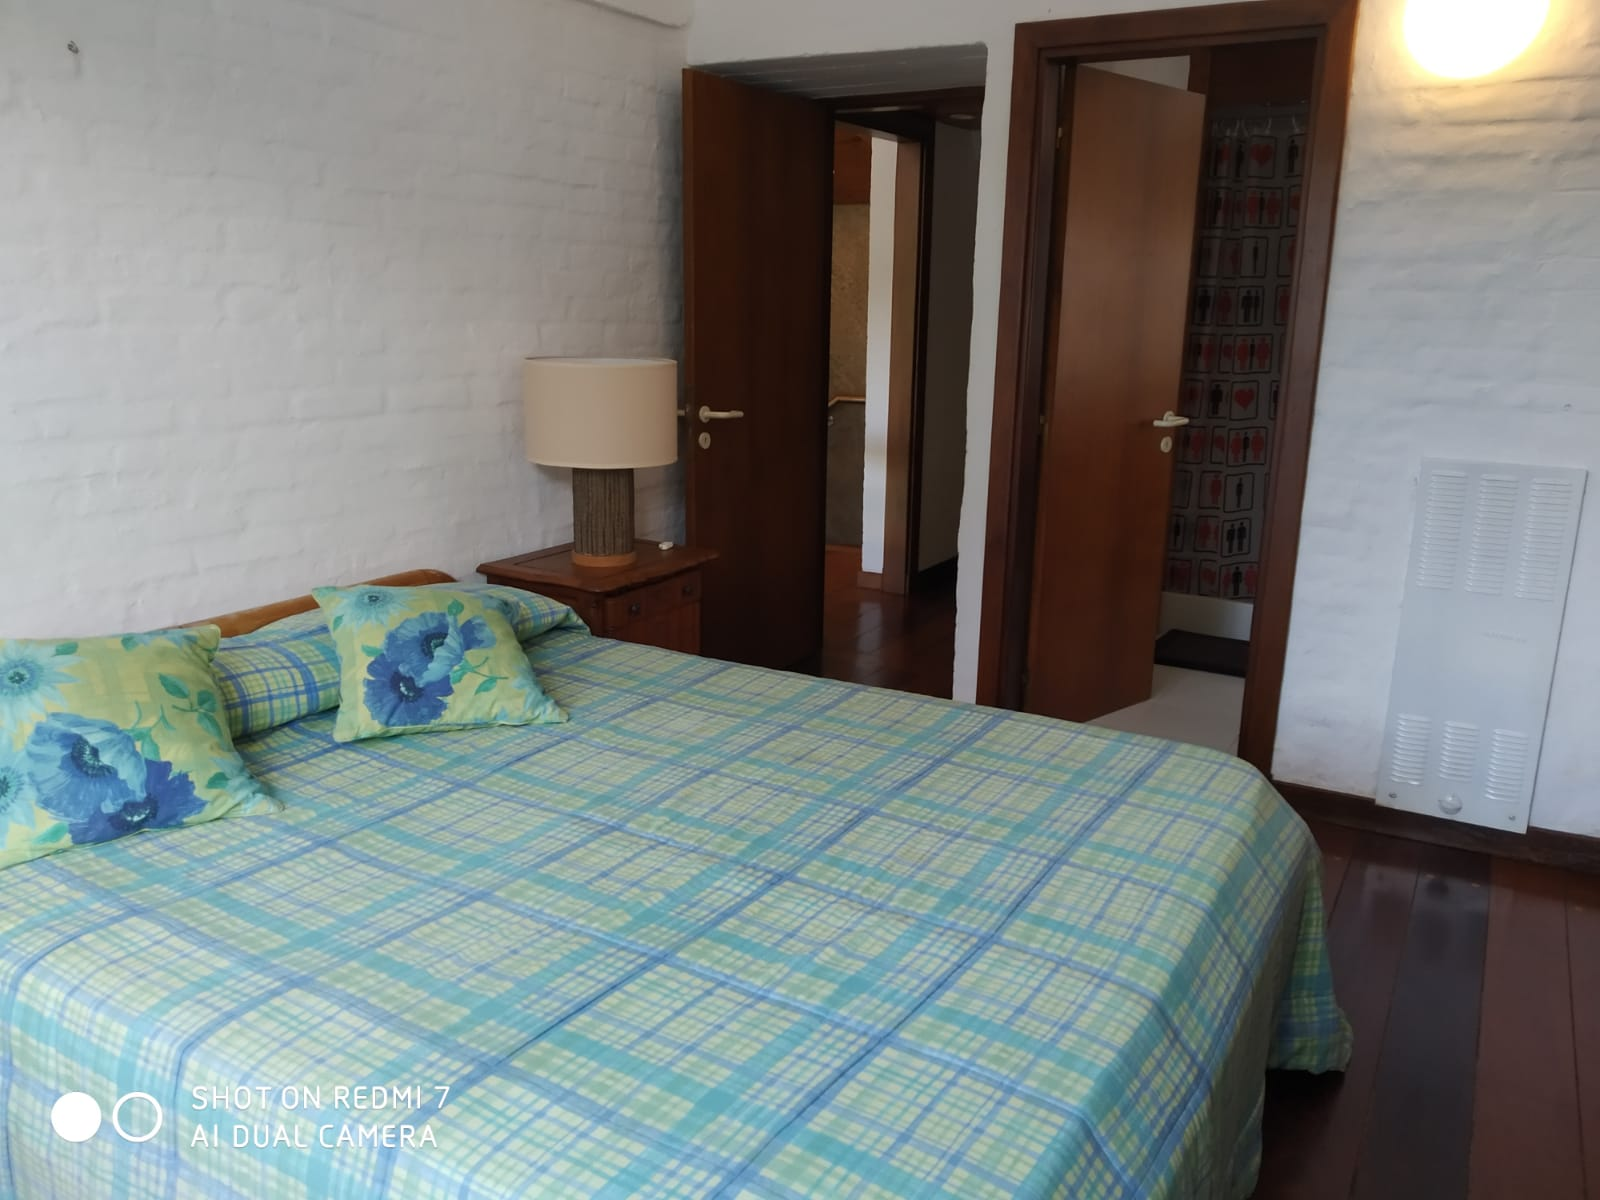 Second suite, with a large double bed